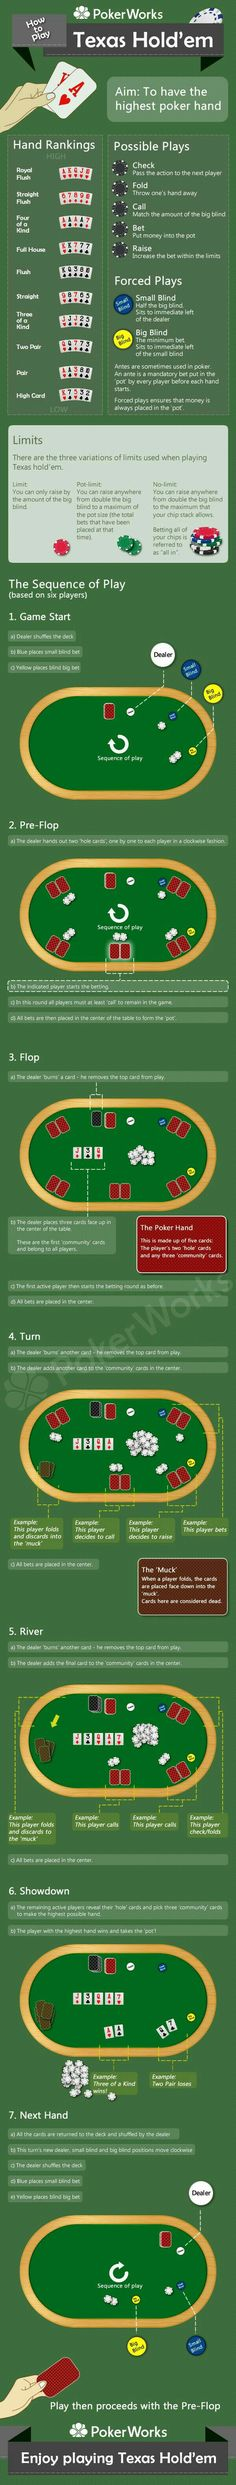 Texas Holdem Hands Chart  Rules Of Texas Holdem  Poker